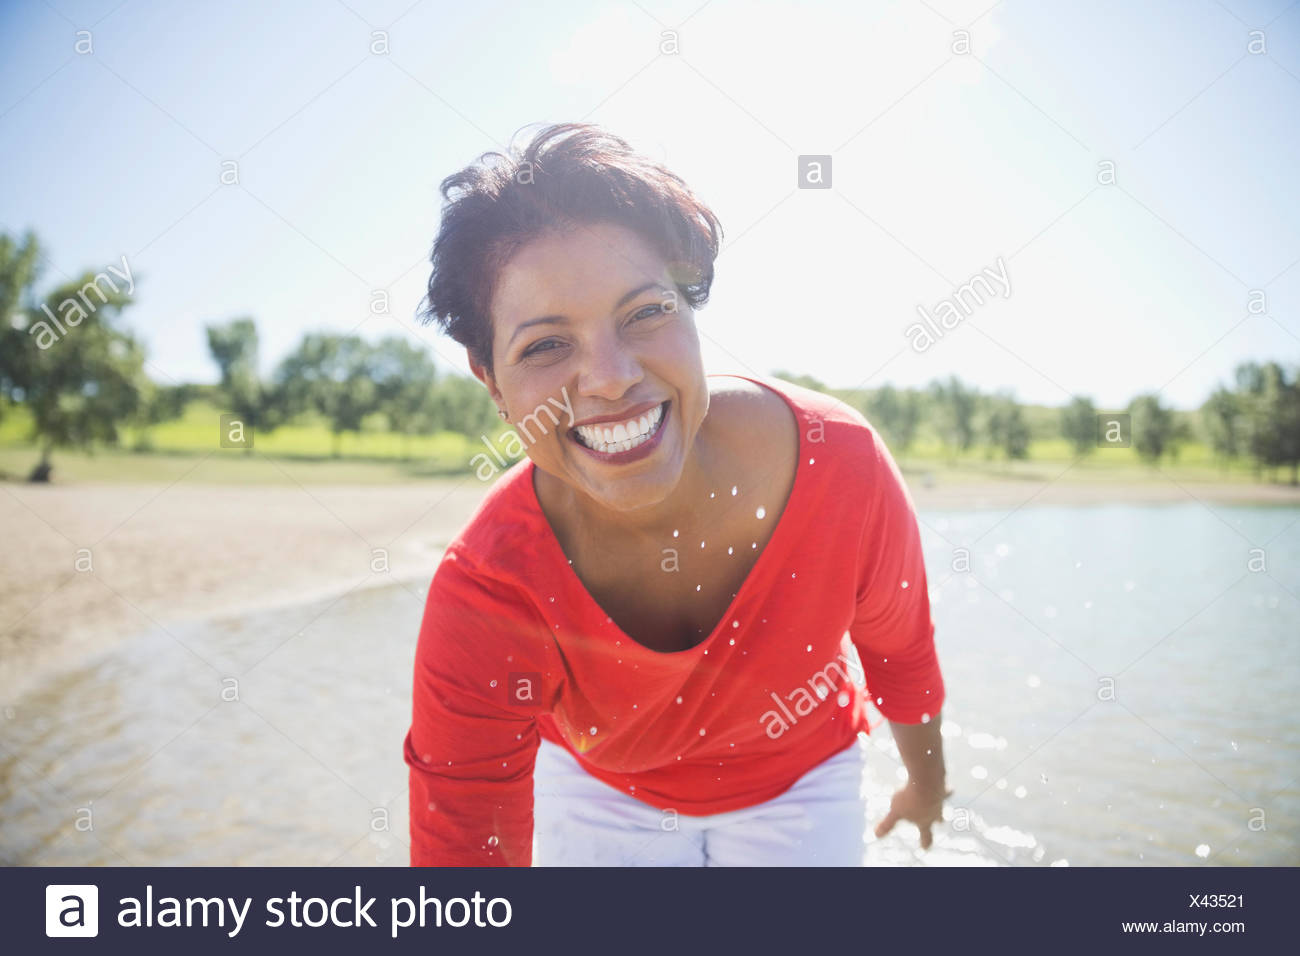 Portrait of woman smiling on the beach Photo Stock